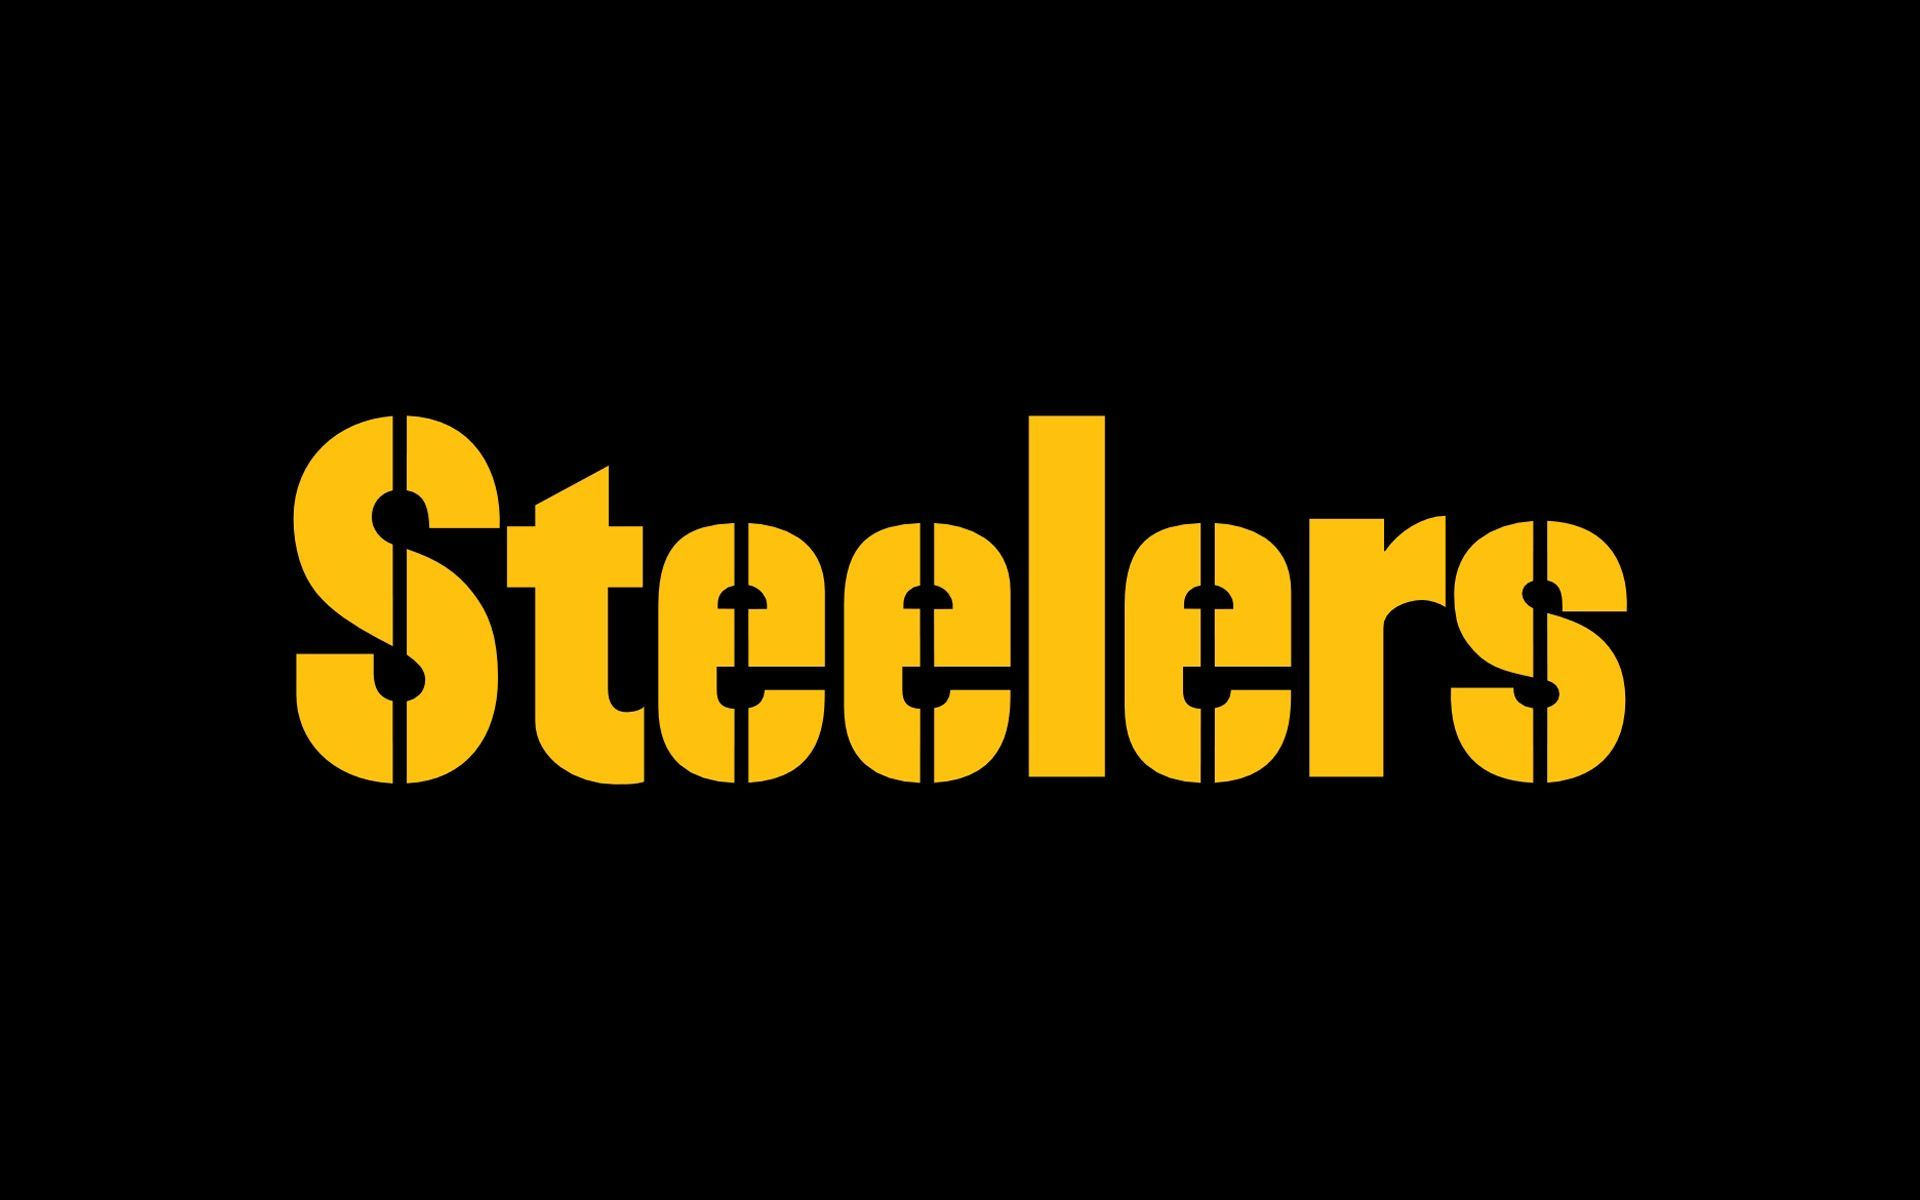 1920x1200 - Steelers Desktop 40